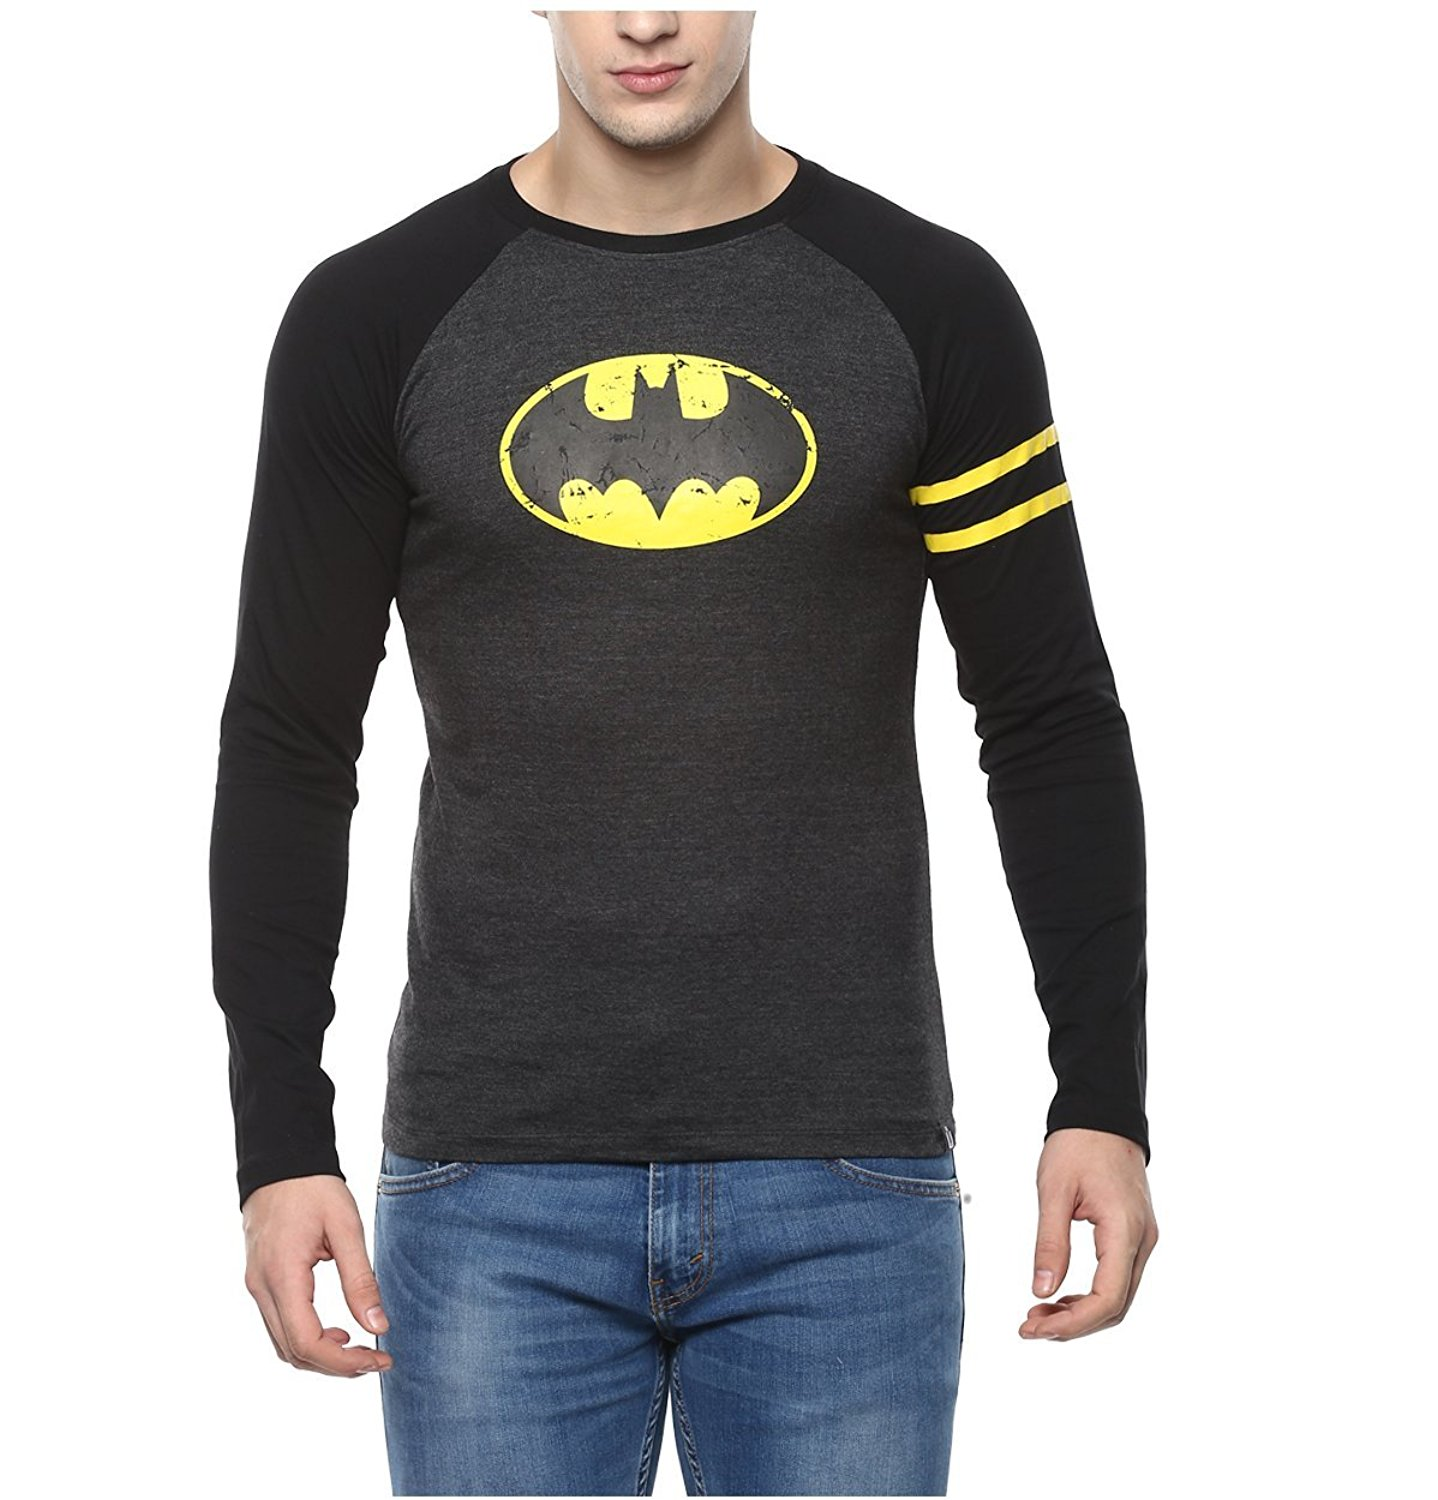 Urbano Fashion Men's T-Shirts & Jeans Upto 60% Discount Starts From Rs.349